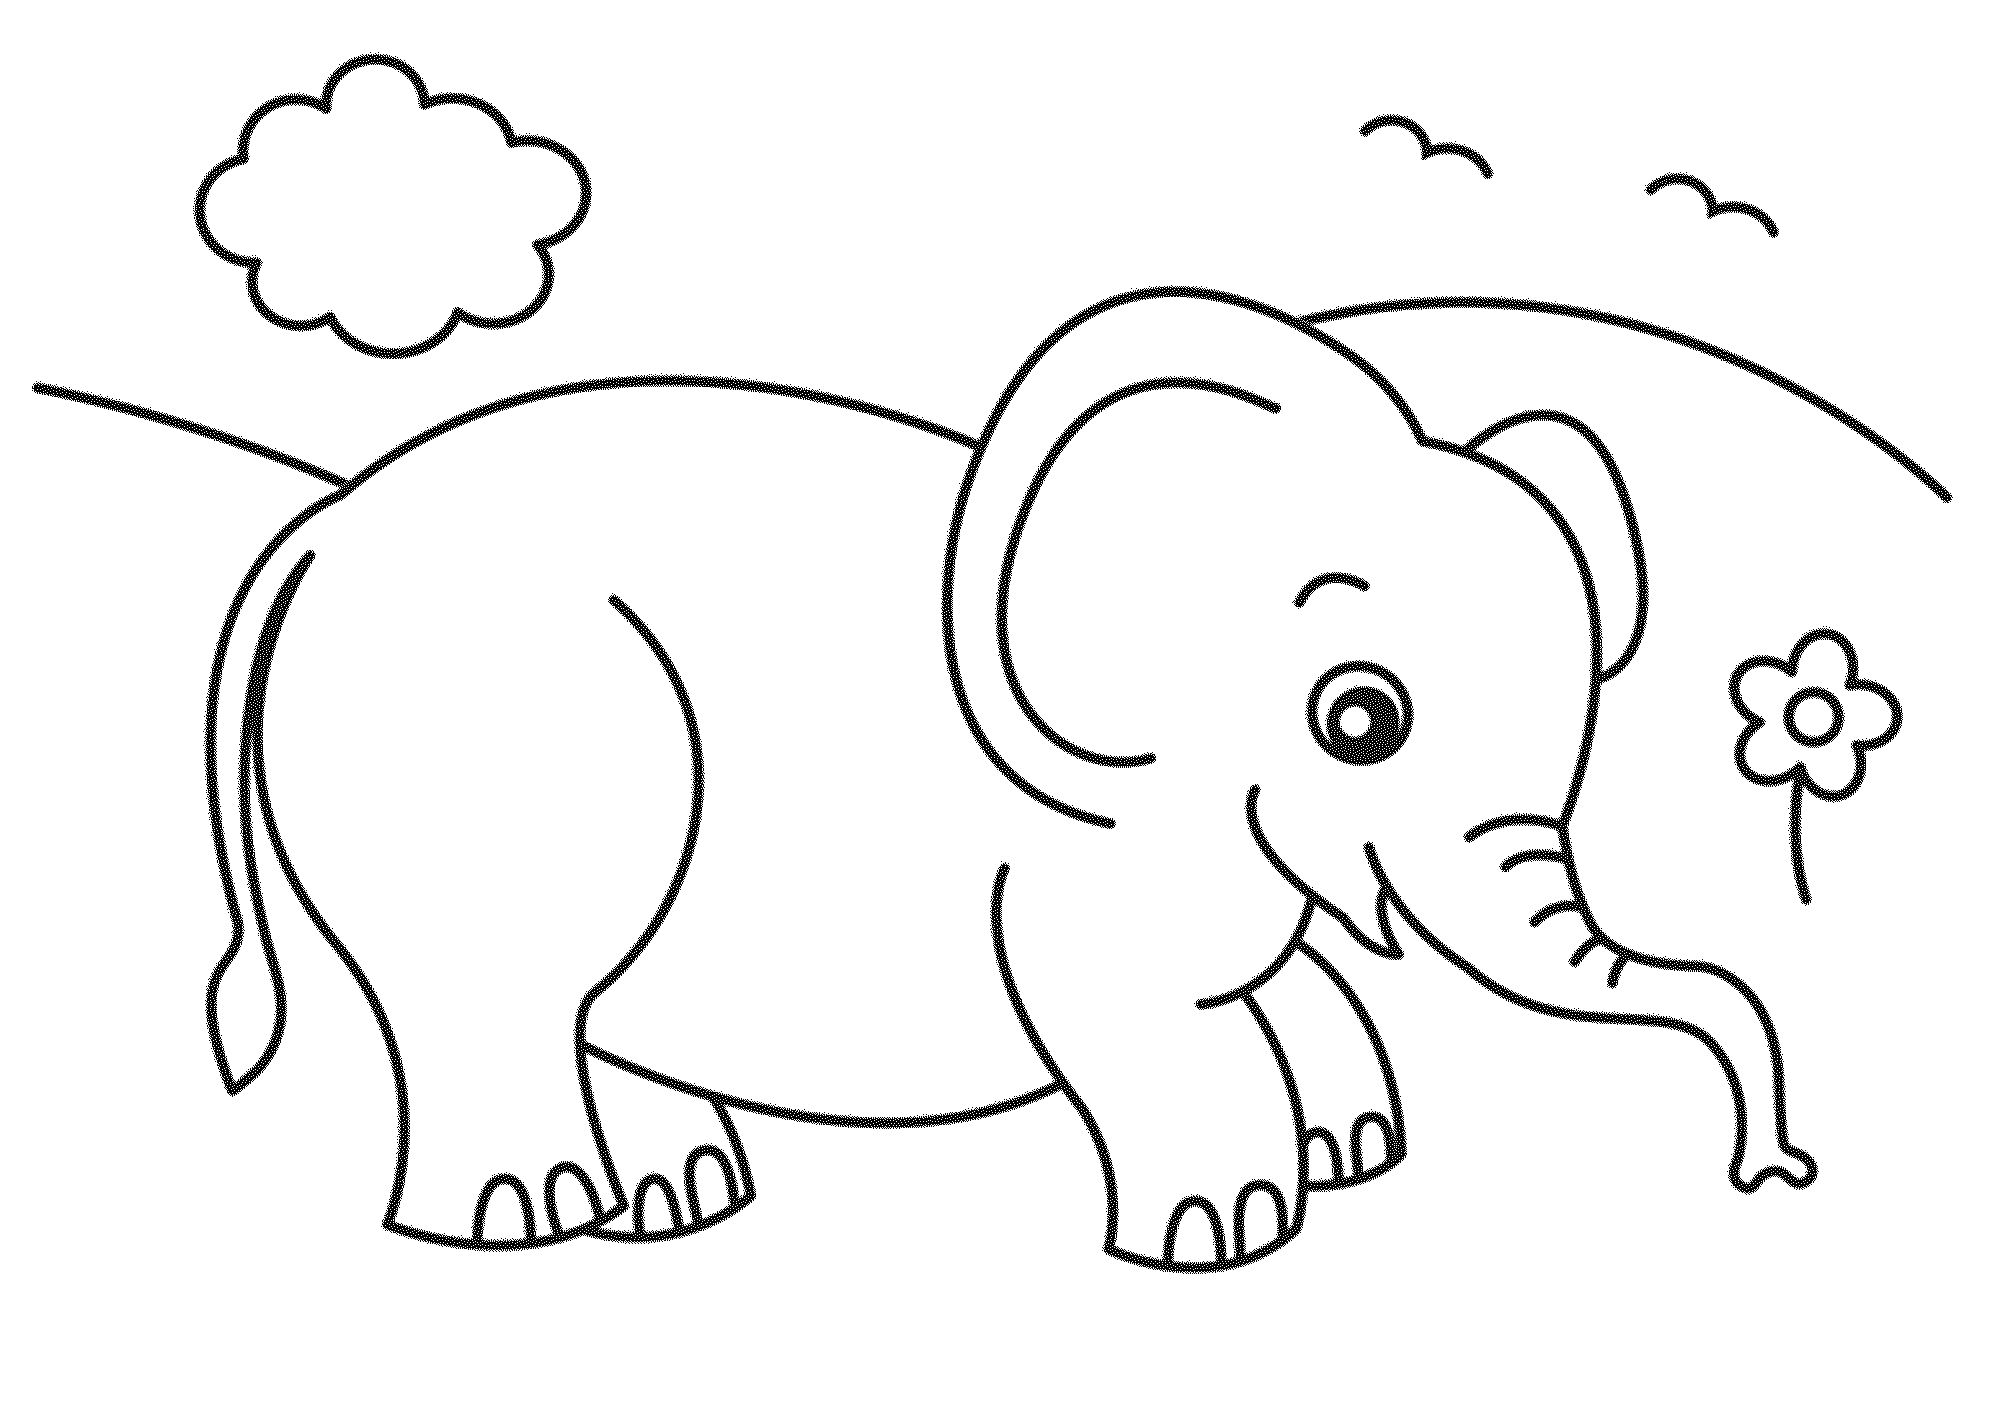 colouring pages of elephant print download teaching kids through elephant coloring pages colouring of elephant